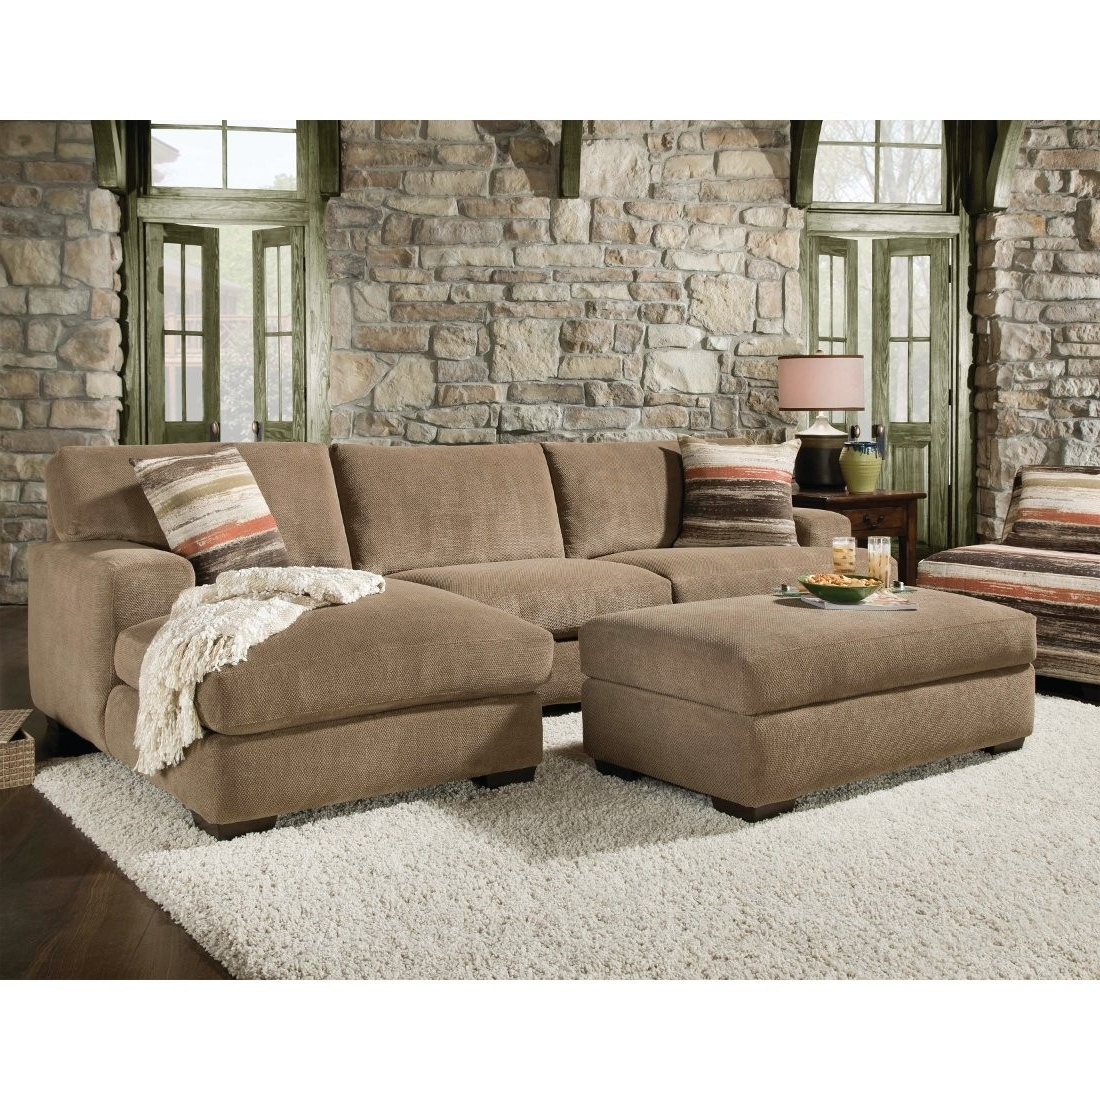 Recent Raymour And Flanigan Sectional Sofas In Sofa : Extra Large Sectionals With Chaise Deep Sofas Deep Couches (View 14 of 15)